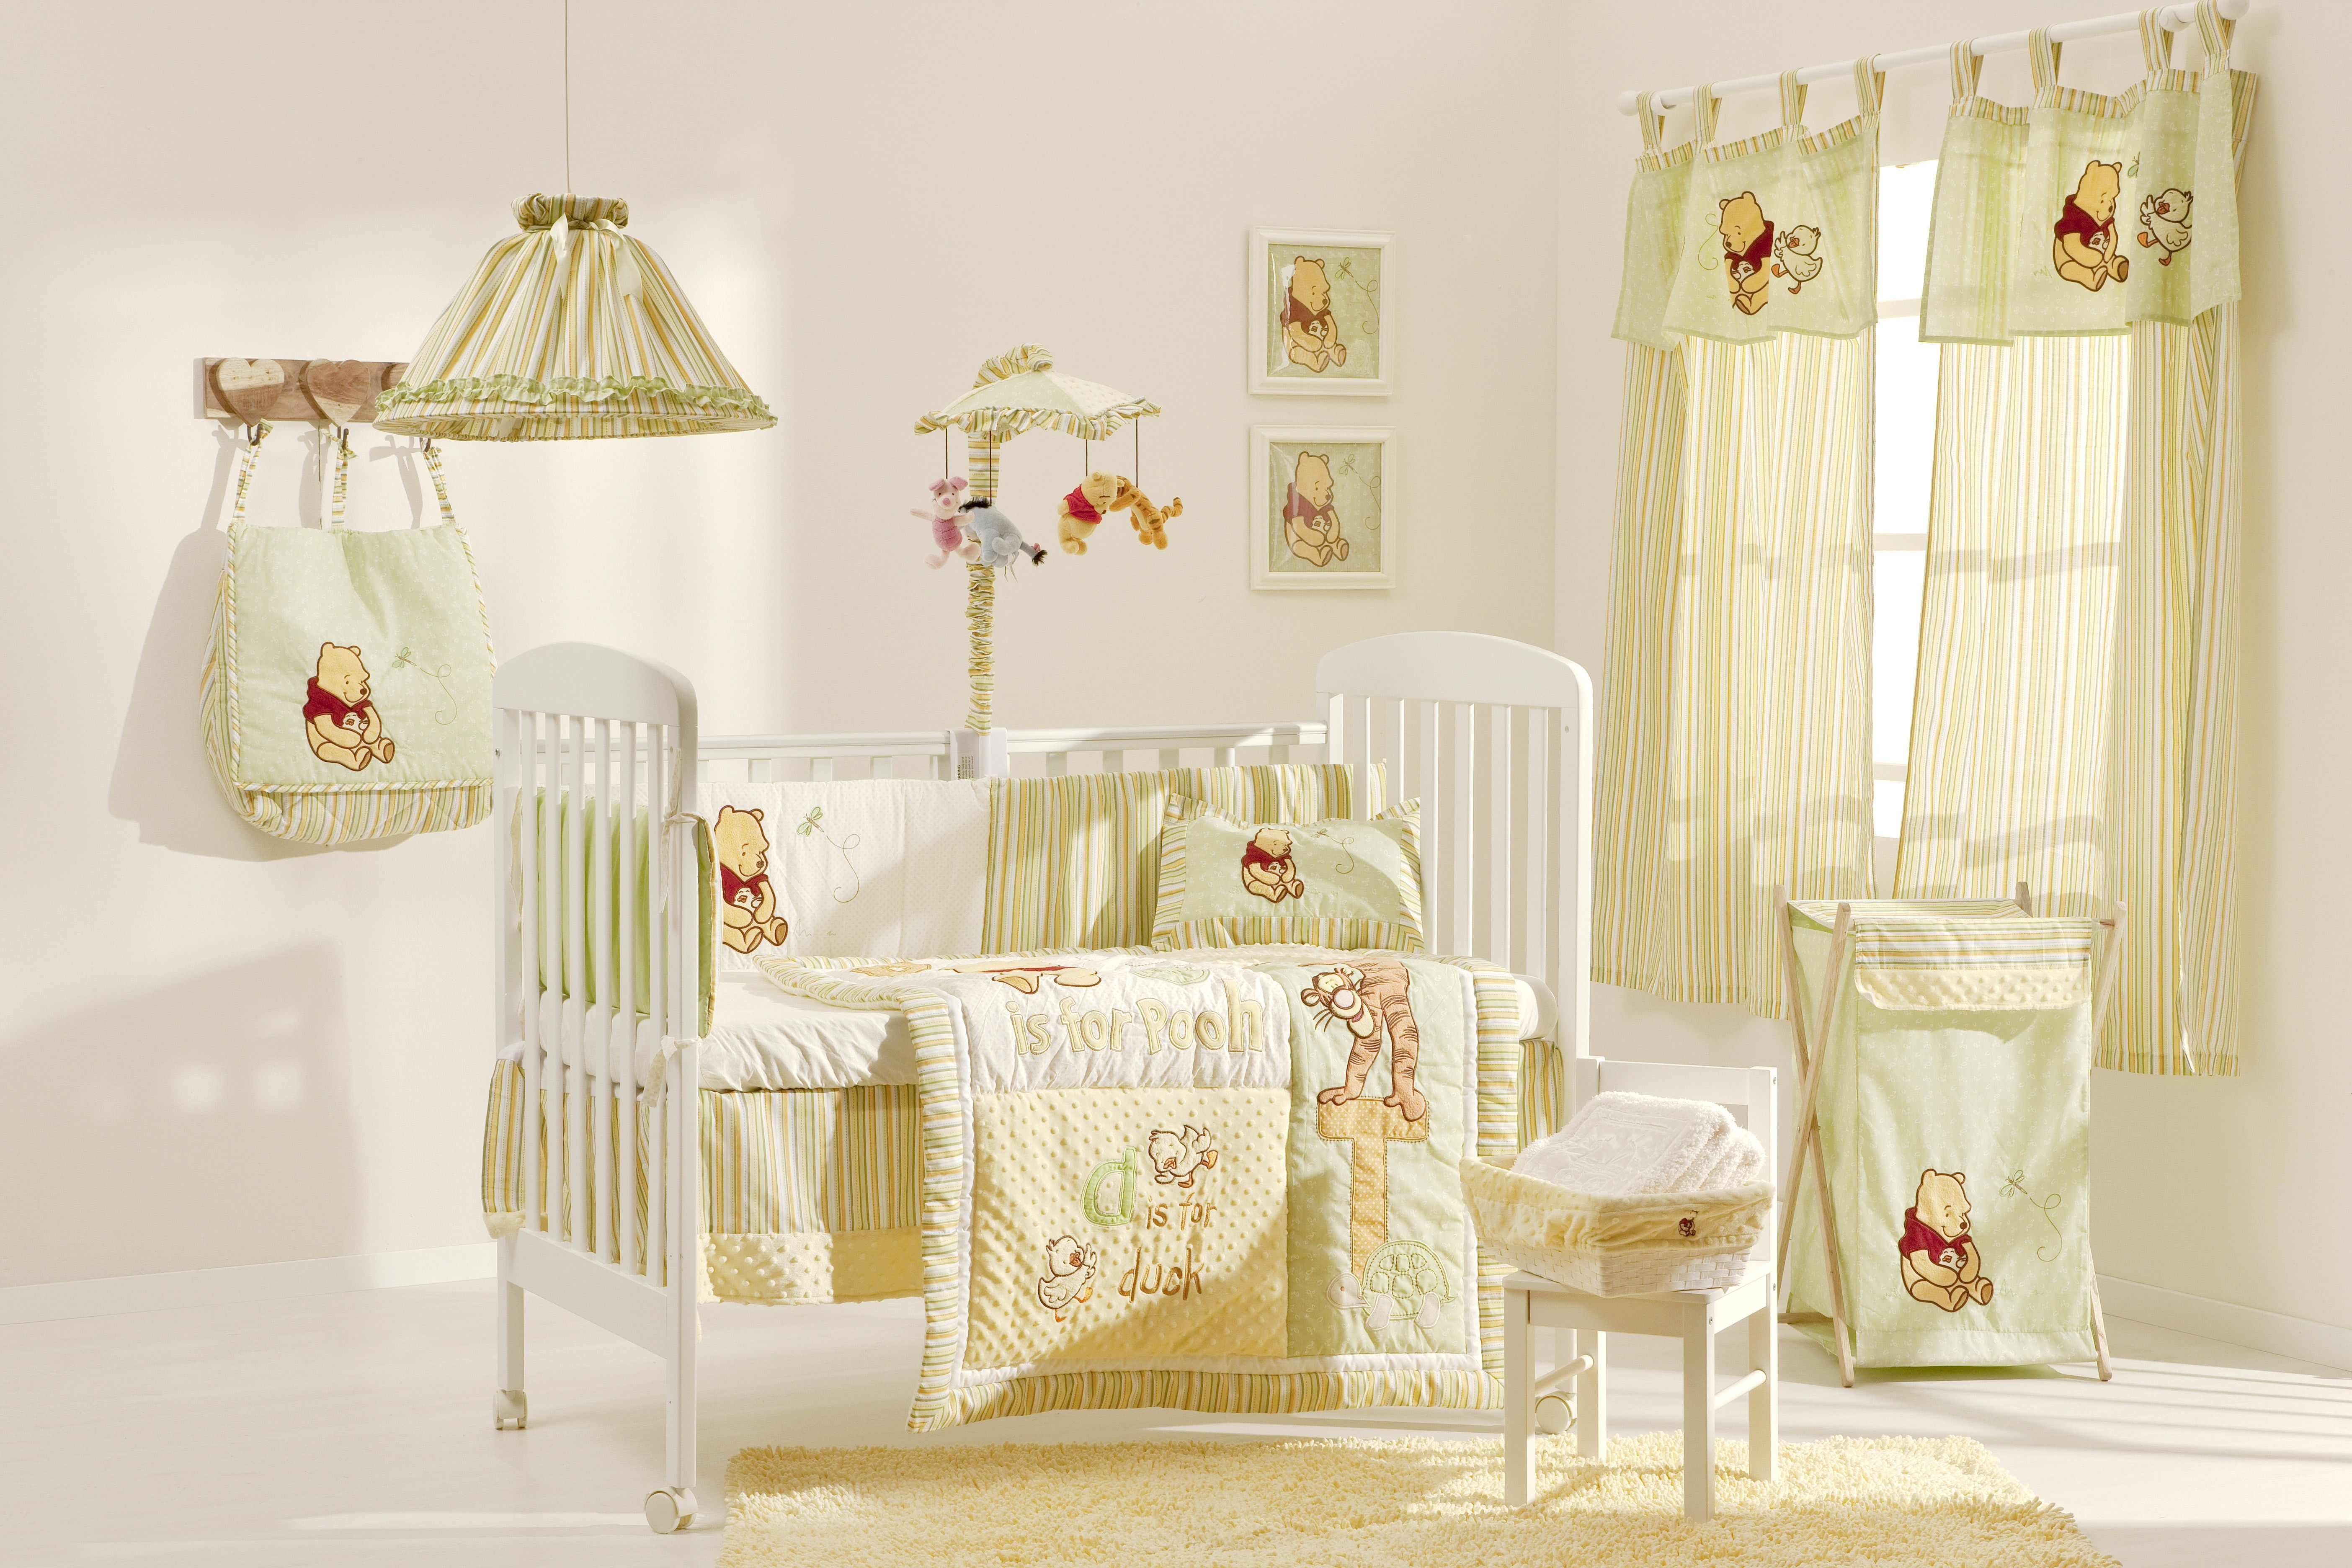 Pooh Bear Nursery In The Field Crib Bedding Collection 4 Pc Set